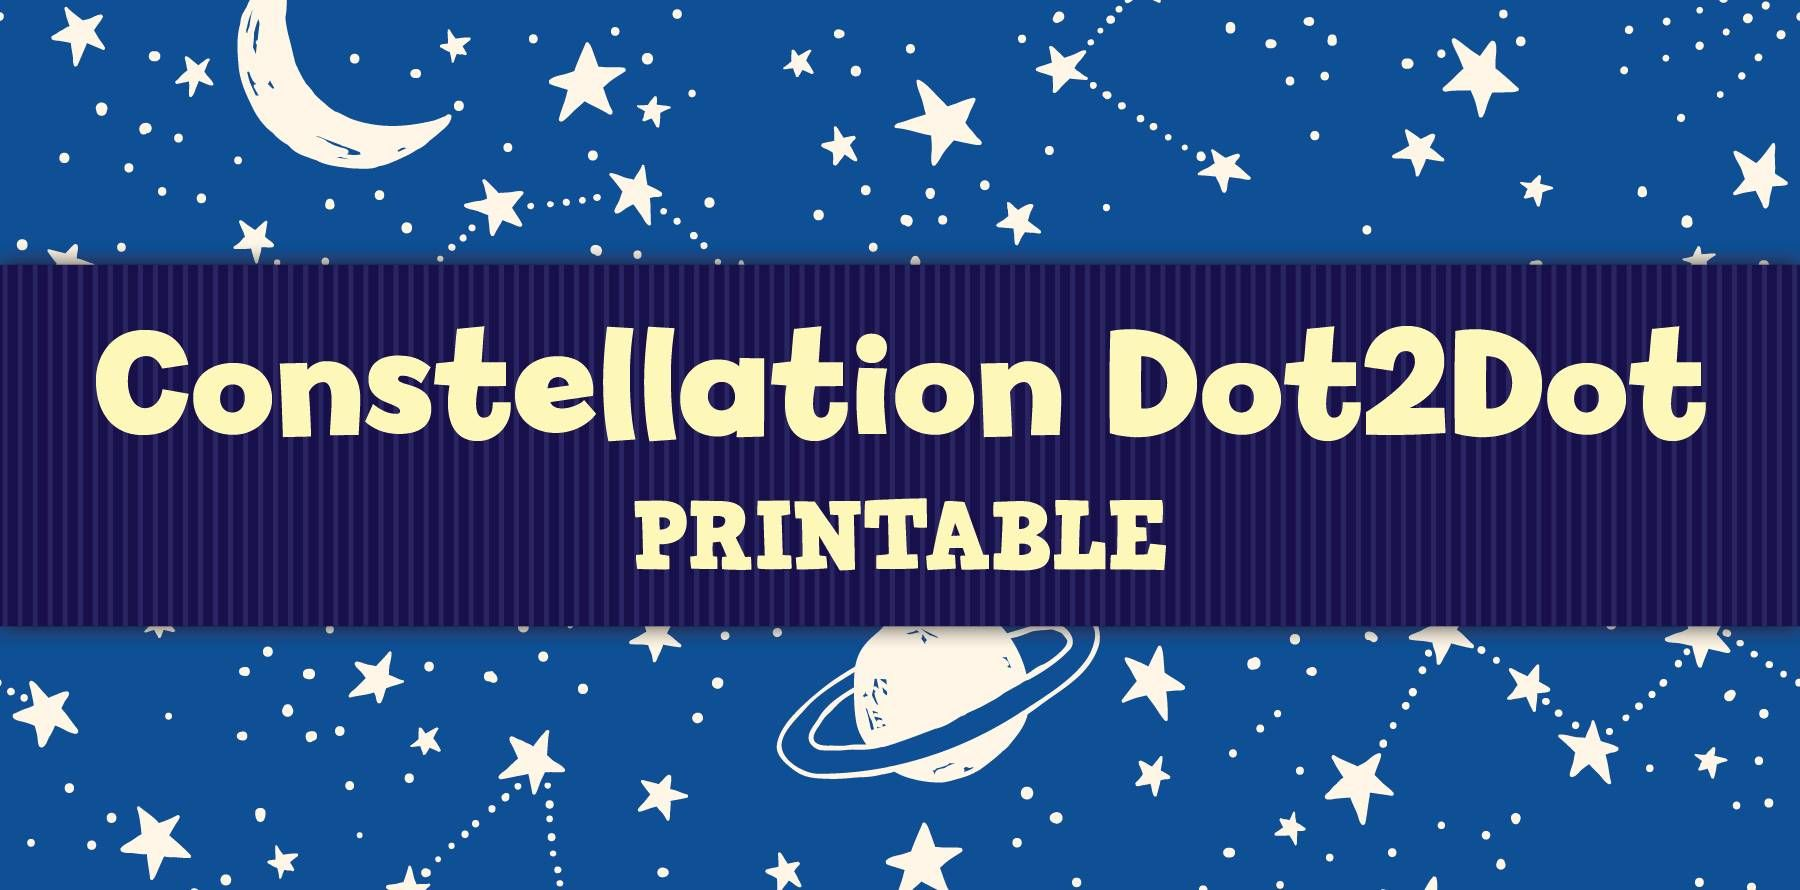 Free Constellation Activity Sheet For Kids In